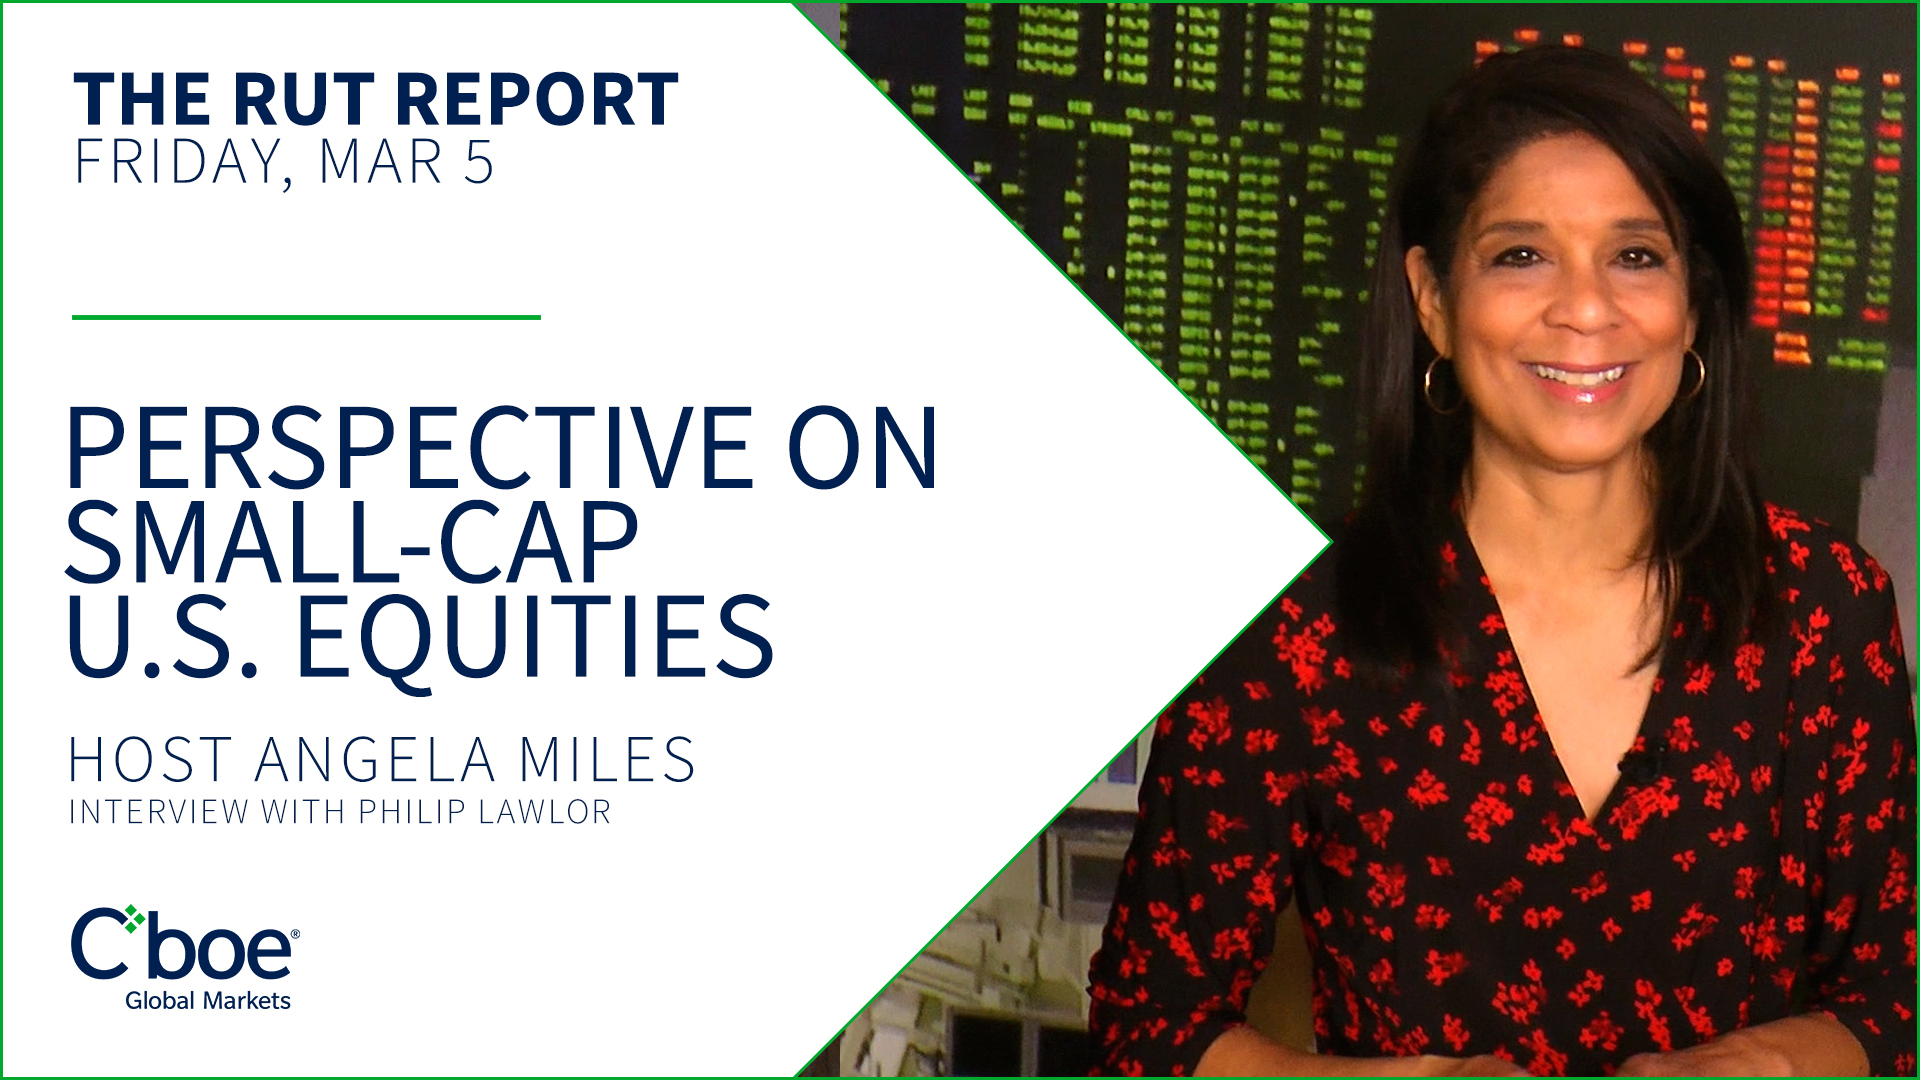 FTSE Russell's Perspective on US Small Cap Equities Thumbnail